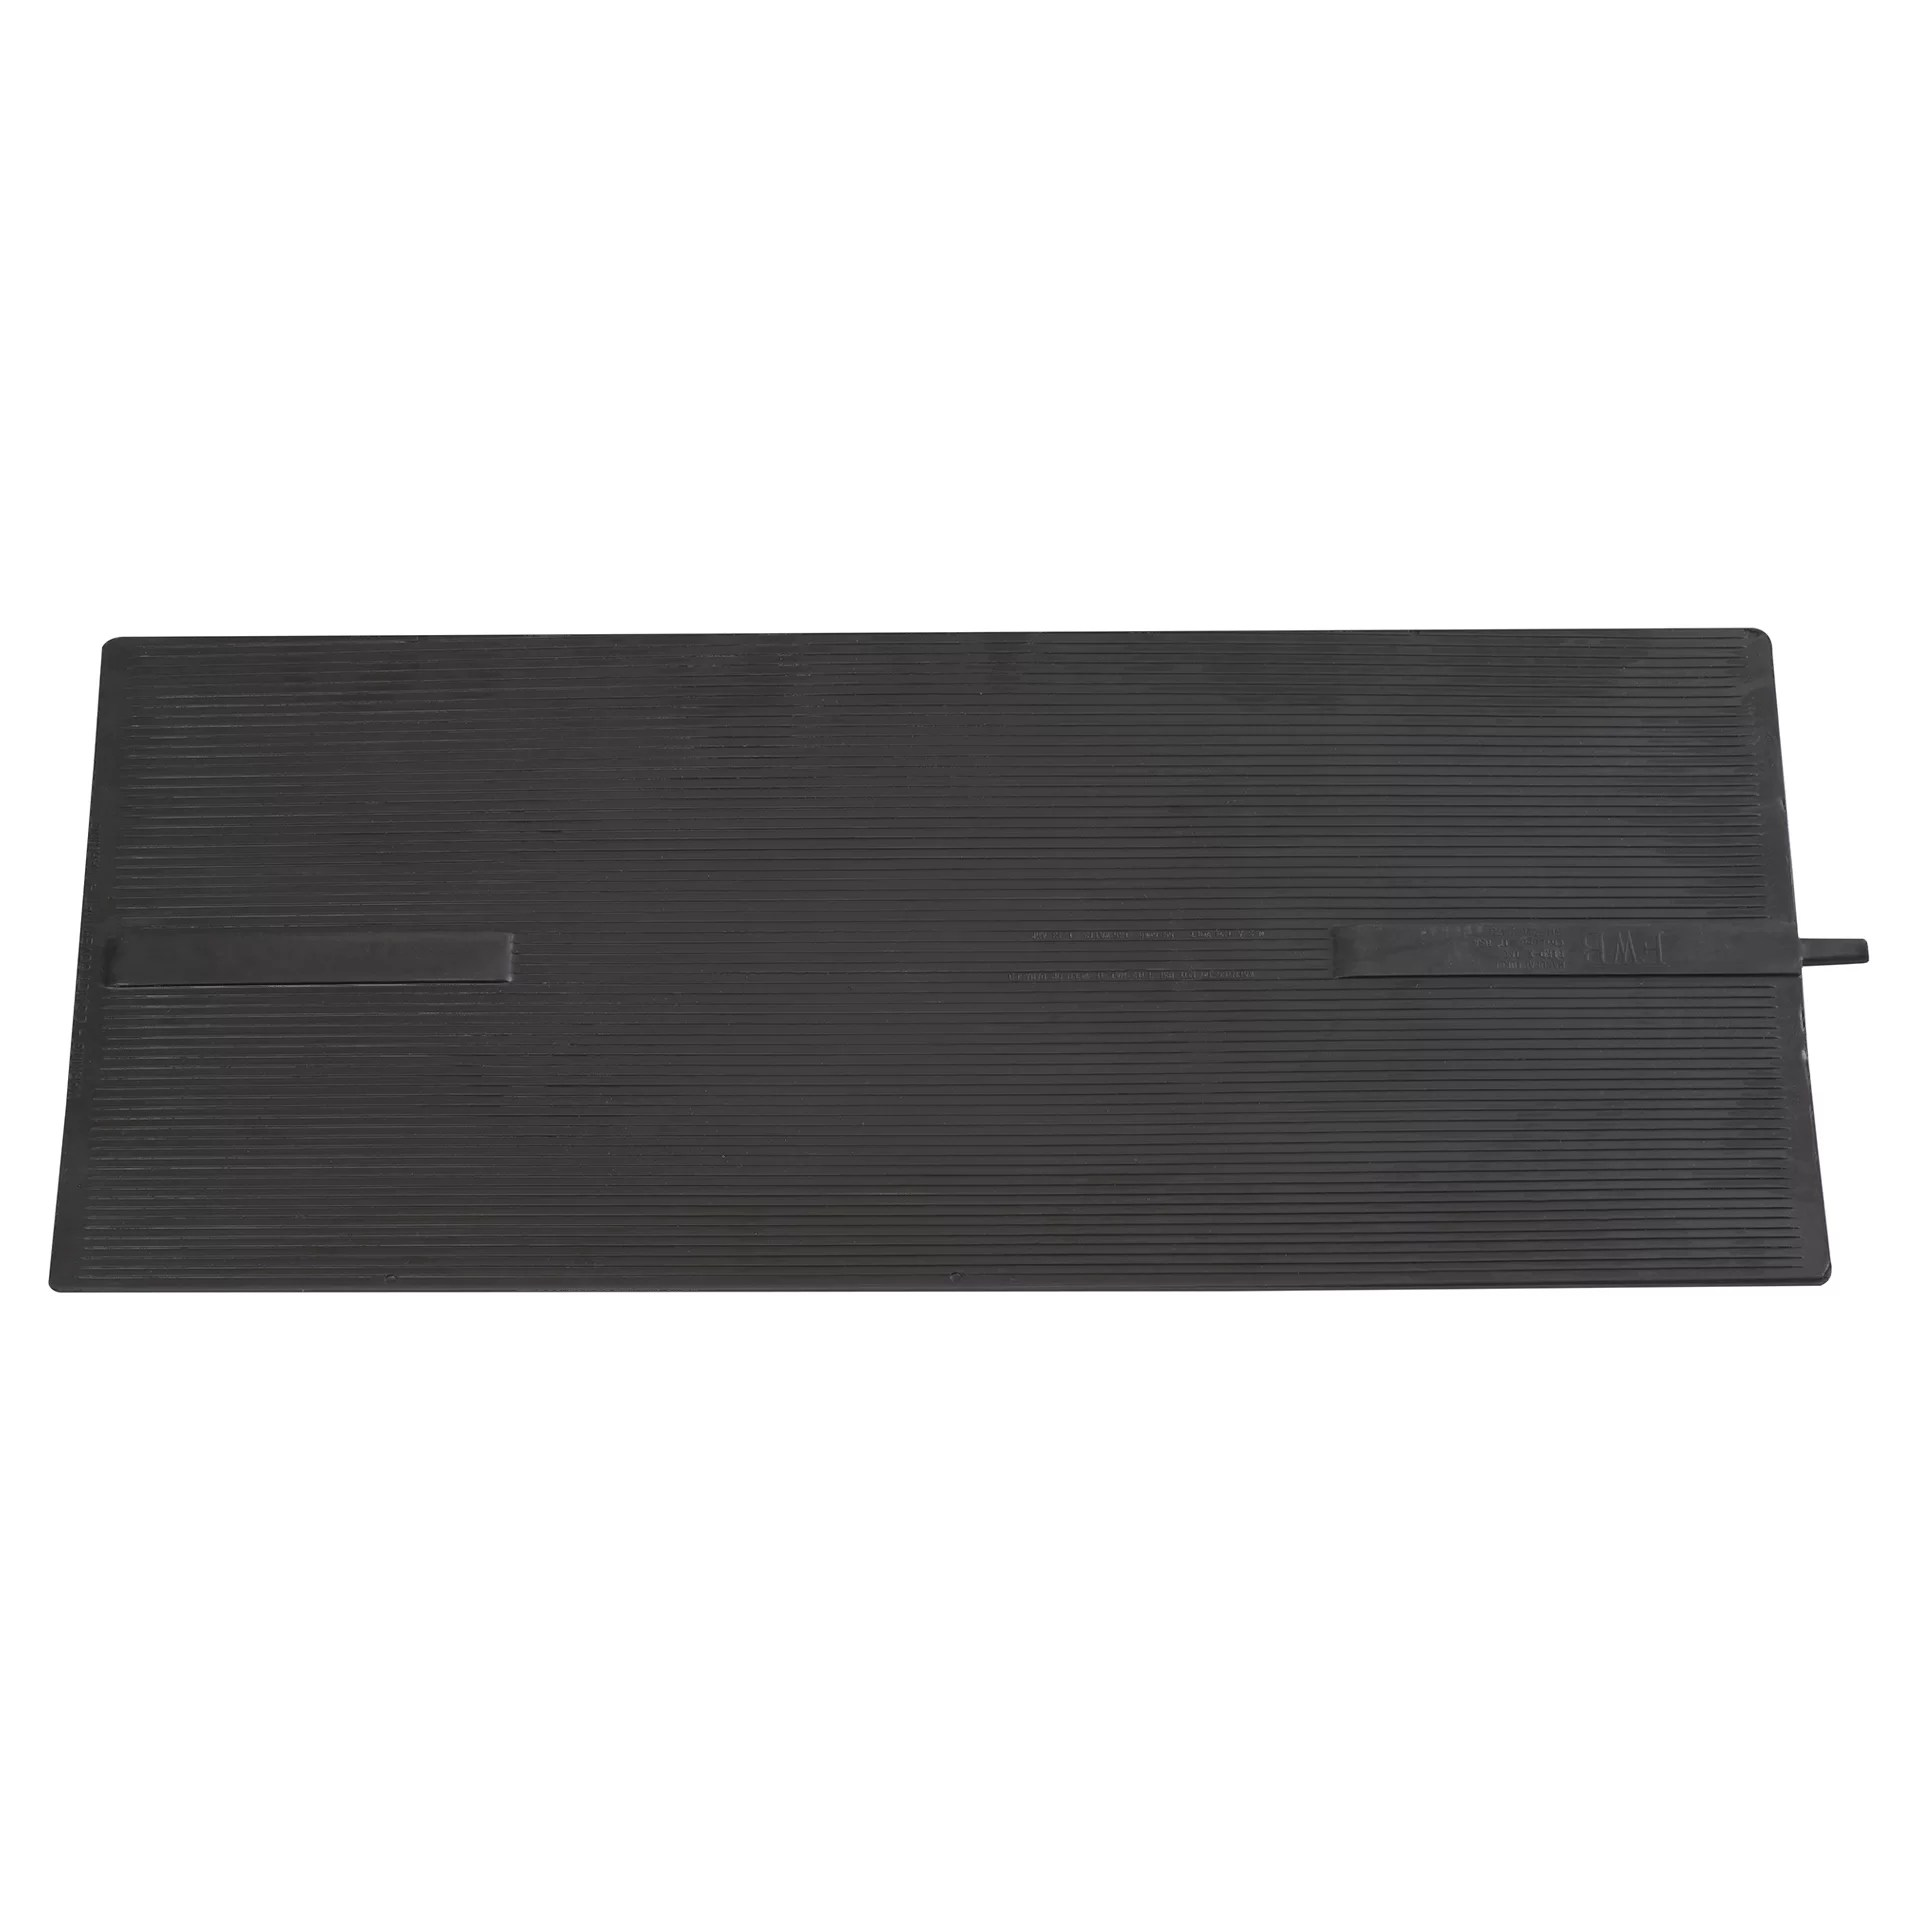 Cozy Products Heated Floor Mat  Reviews  Wayfair